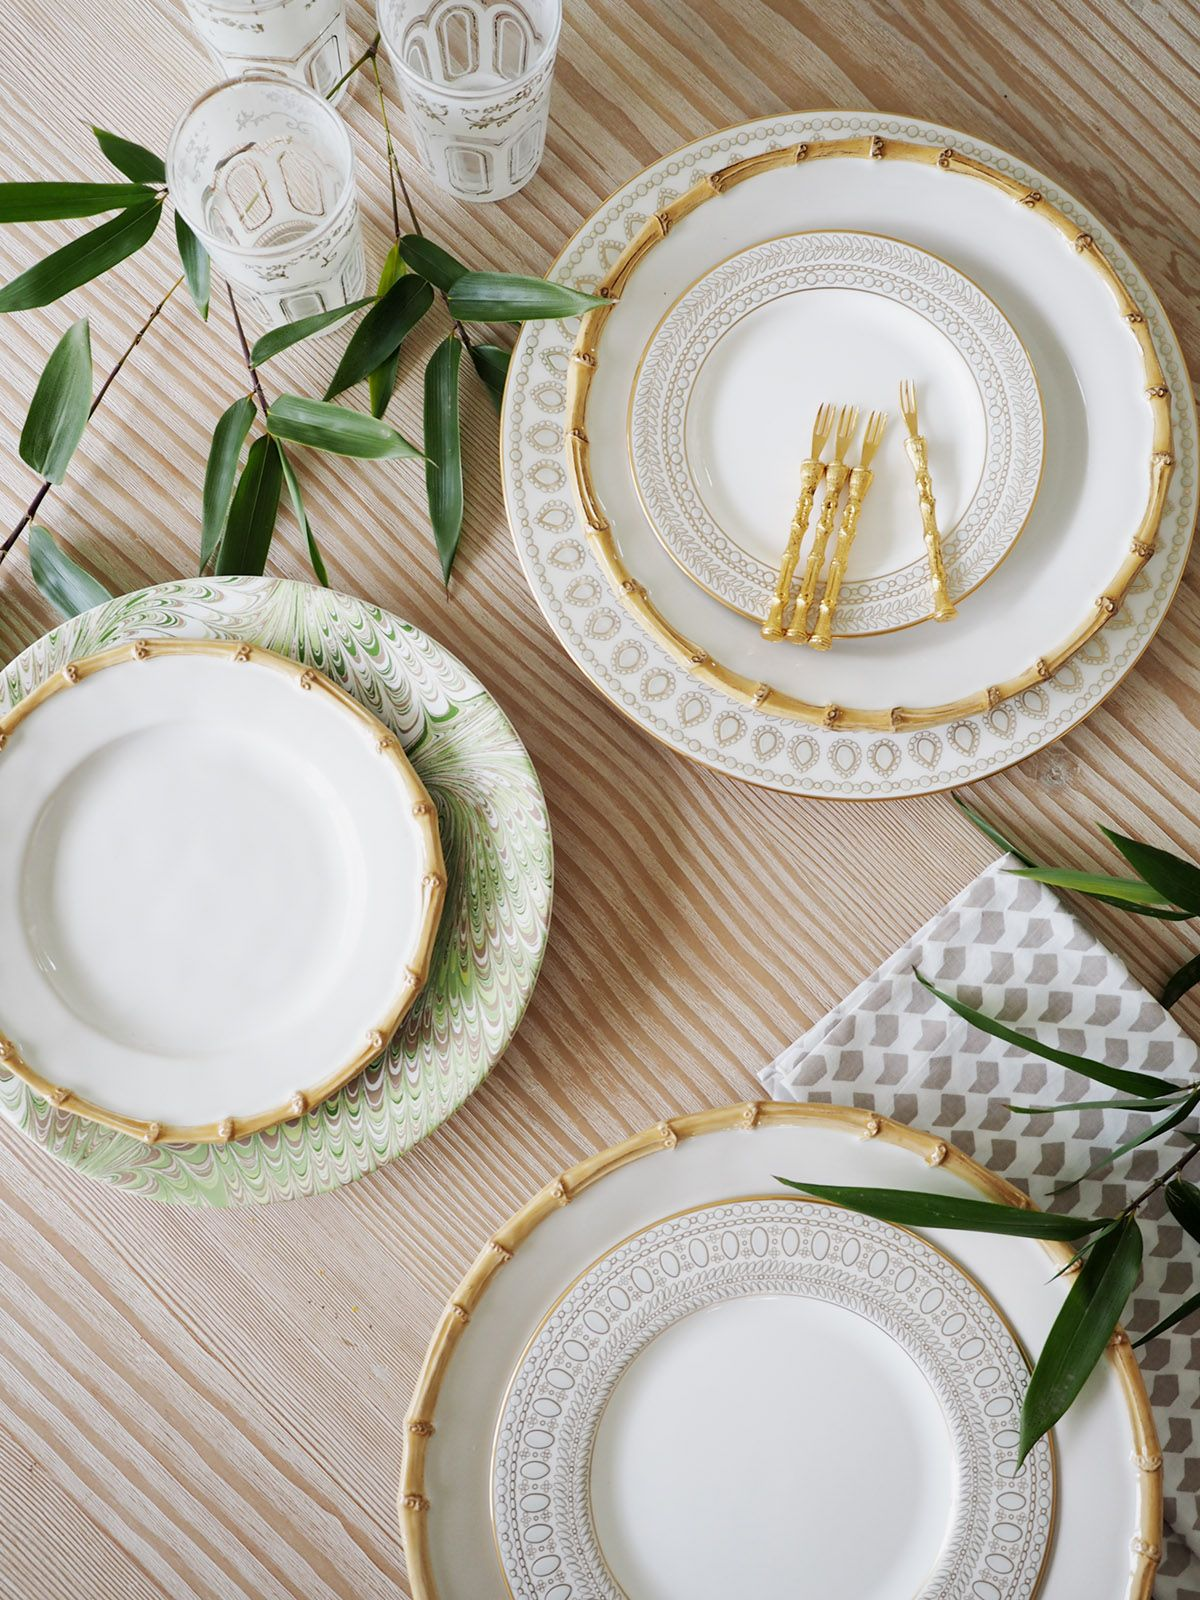 How To Mix N Match China For A Modern Registry Coco Kelley Unique Table Settings Table Settings Entertaining Tablescapes Mix and match dinnerware sets